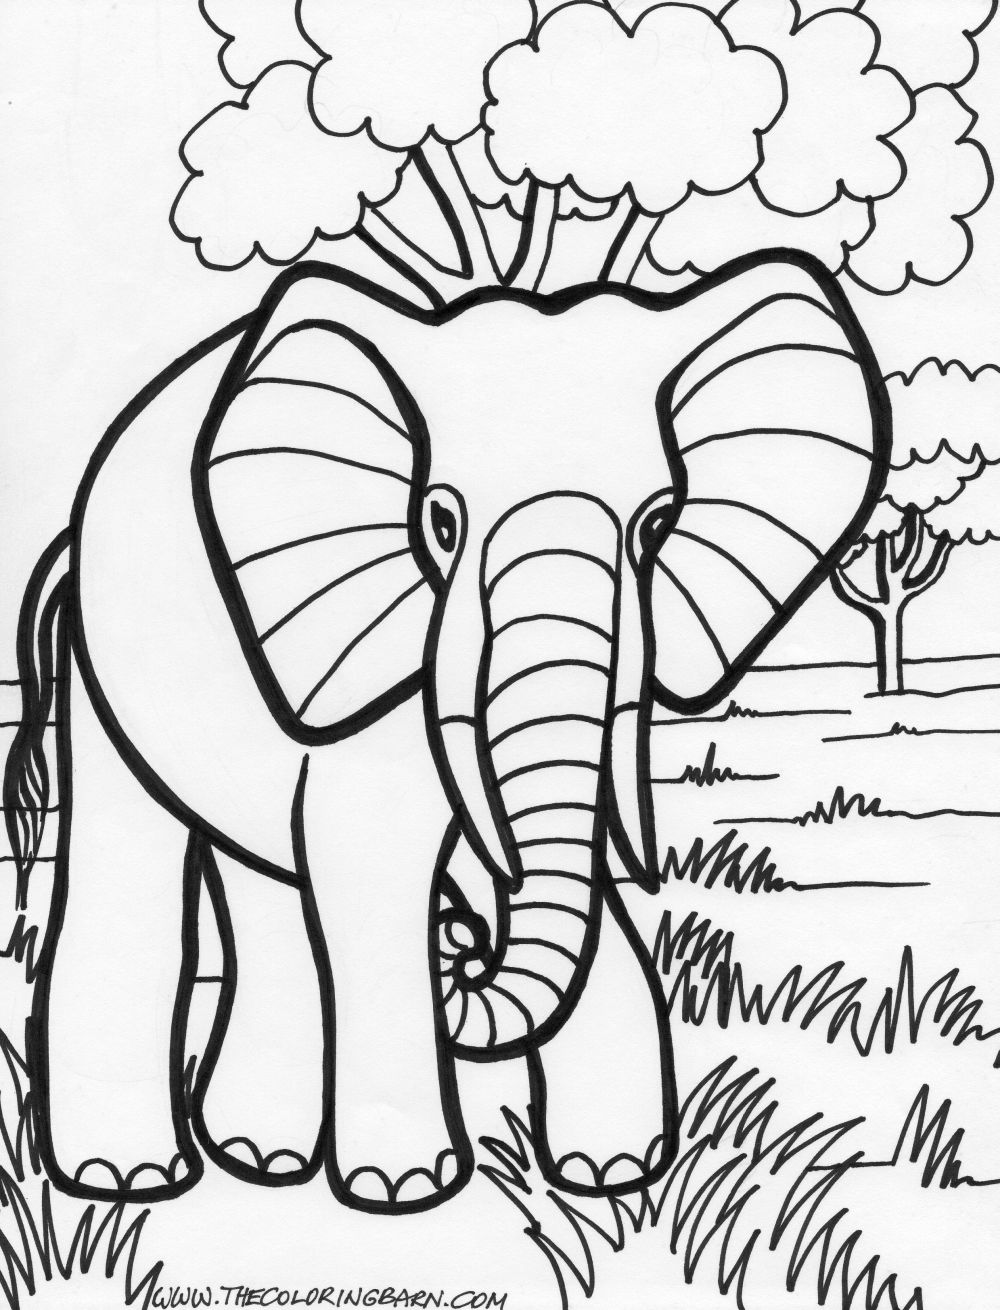 Jarvis Varnado 14 Elephant Coloring Pages For Kids Elephant Coloring Pages